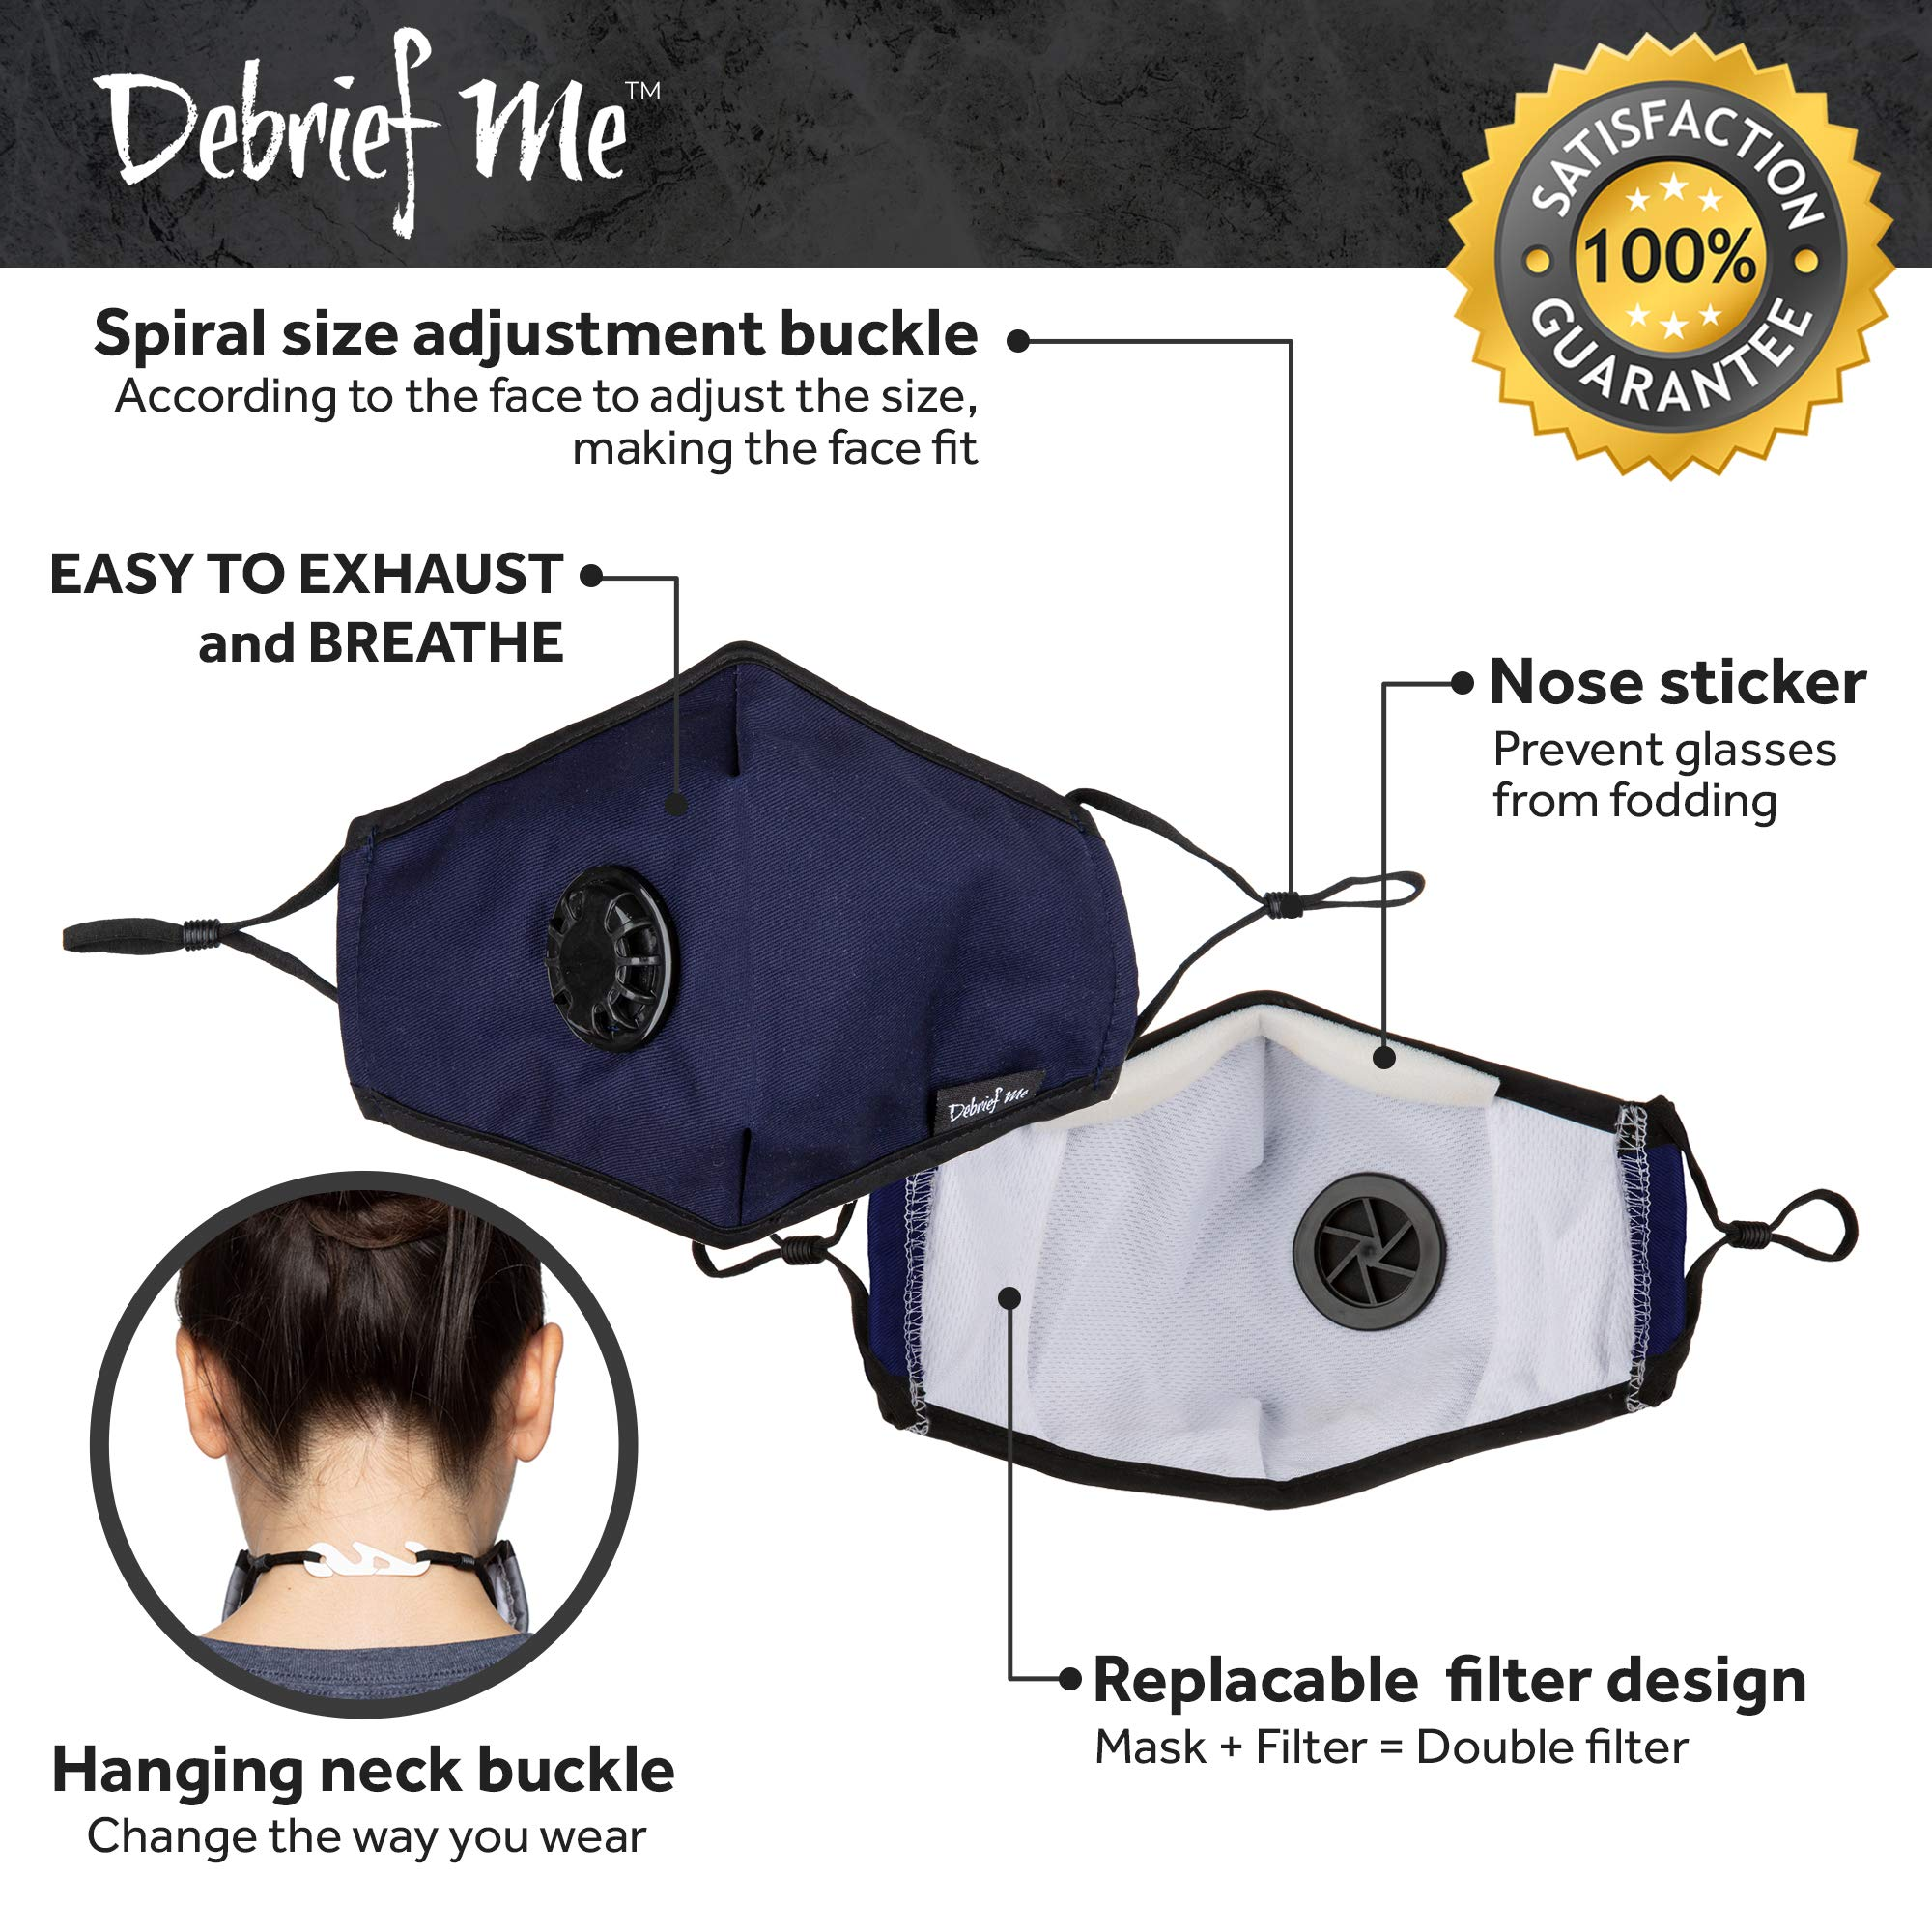 Debrief Me Military Grade N99 (4 Masks) Carbon Activated Anti Dust Face Mouth Cover Mask Respirator-Dustproof Anti-bacterial Washable -Reusable Respirator Comfy-Cotton(N99-4Color) by Debrief Me (Image #8)